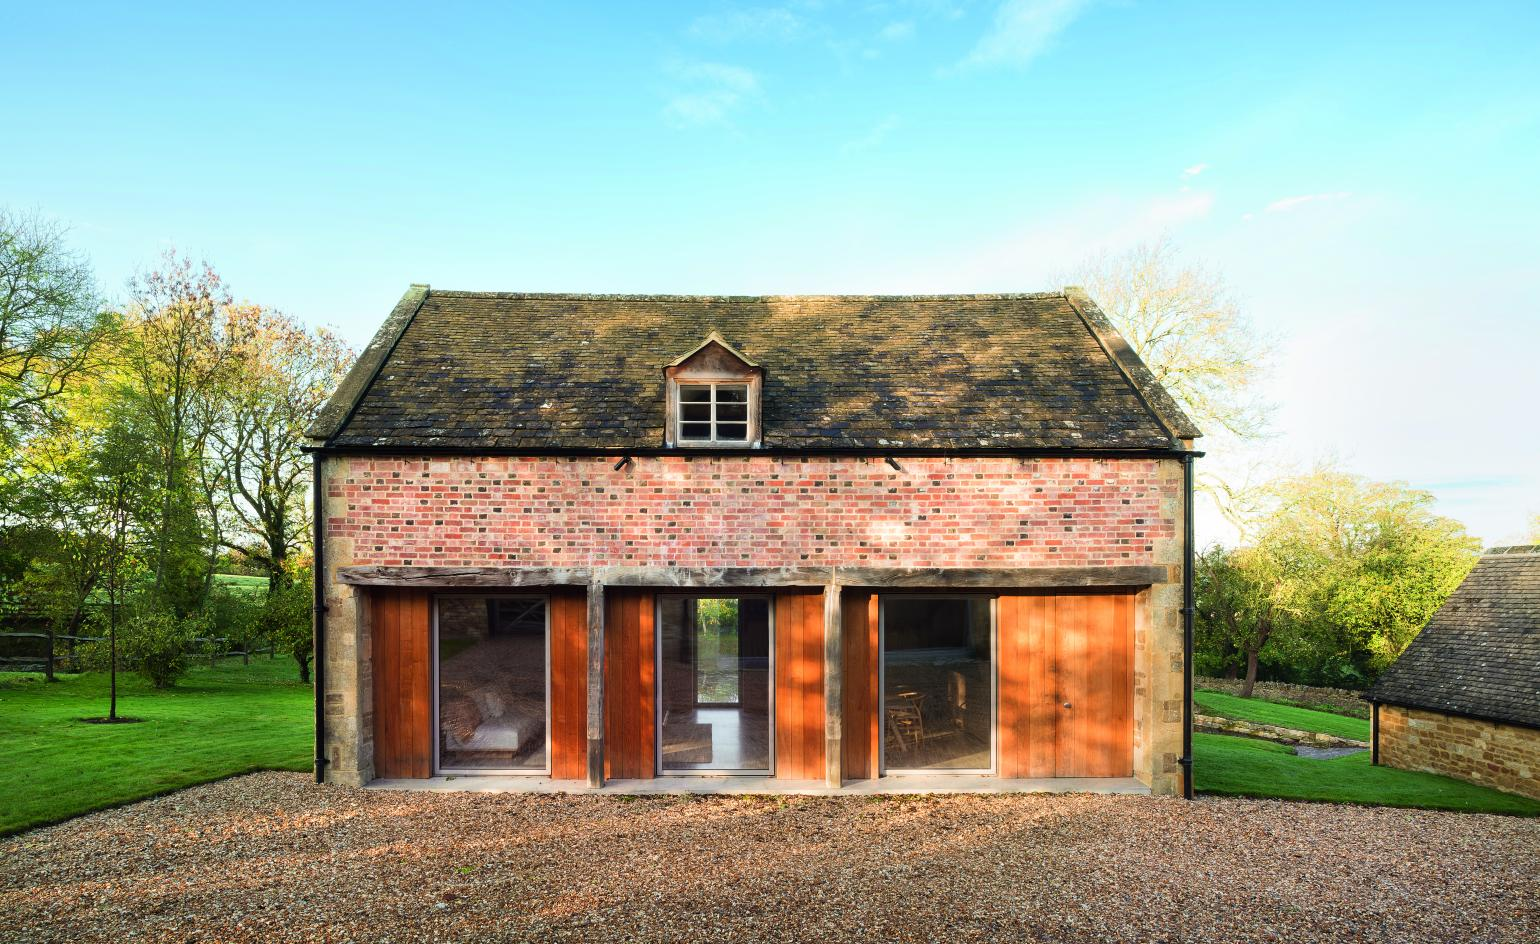 John Pawson gives us a tour of his countryside retreat in the Cotswolds